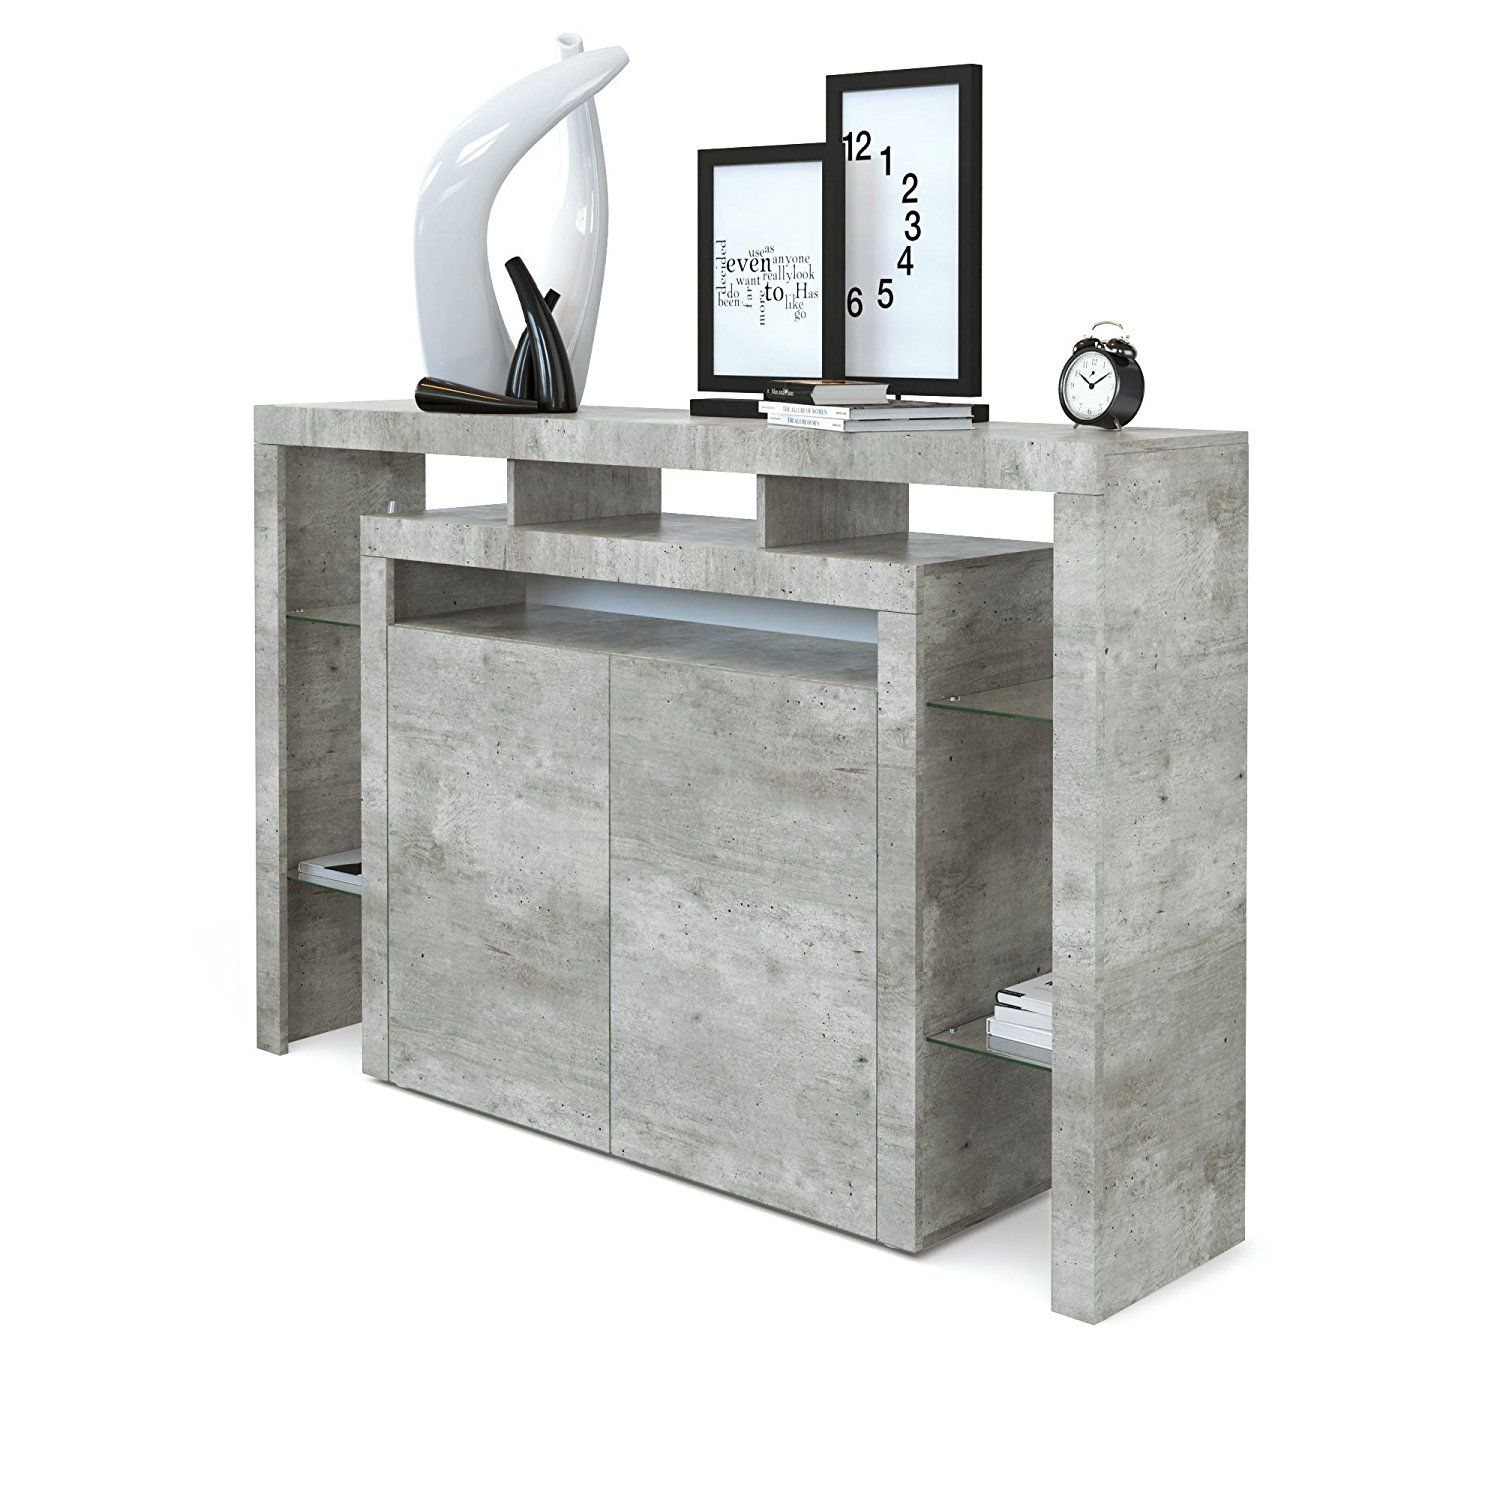 Highboard Sideboard Korpus Und Fronten In Moderner Beton Optik